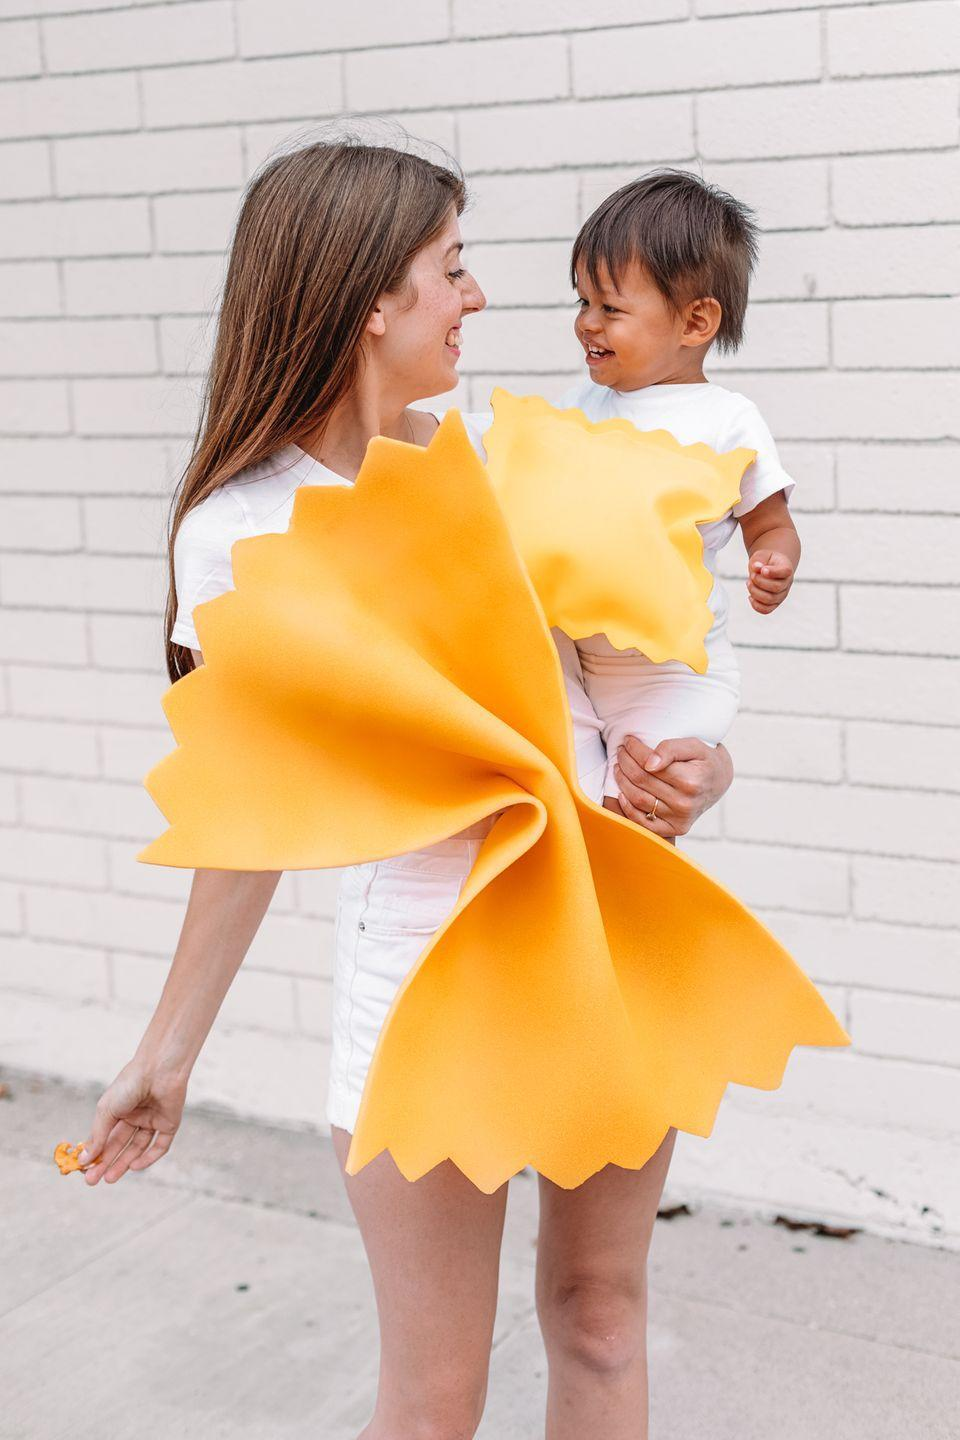 """<p>Short on time? It's not <em>impastable</em> to create a quick on-the-spot costume. This matching carb-y creation has both you and your little one covered before you head out trick-or-treating. </p><p><strong>Get the tutorial at <a href=""""https://studiodiy.com/2018/10/10/diy-pasta-costume/"""" rel=""""nofollow noopener"""" target=""""_blank"""" data-ylk=""""slk:Studio DIY"""" class=""""link rapid-noclick-resp"""">Studio DIY</a>. </strong></p><p><strong><a class=""""link rapid-noclick-resp"""" href=""""https://www.amazon.com/Rust-Oleum-249092-Painters-Purpose-12-Ounce/dp/B002BWOS0S/?tag=syn-yahoo-20&ascsubtag=%5Bartid%7C10050.g.23785711%5Bsrc%7Cyahoo-us"""" rel=""""nofollow noopener"""" target=""""_blank"""" data-ylk=""""slk:SHOP YELLOW SPRAY PAINT"""">SHOP YELLOW SPRAY PAINT</a><br></strong></p>"""